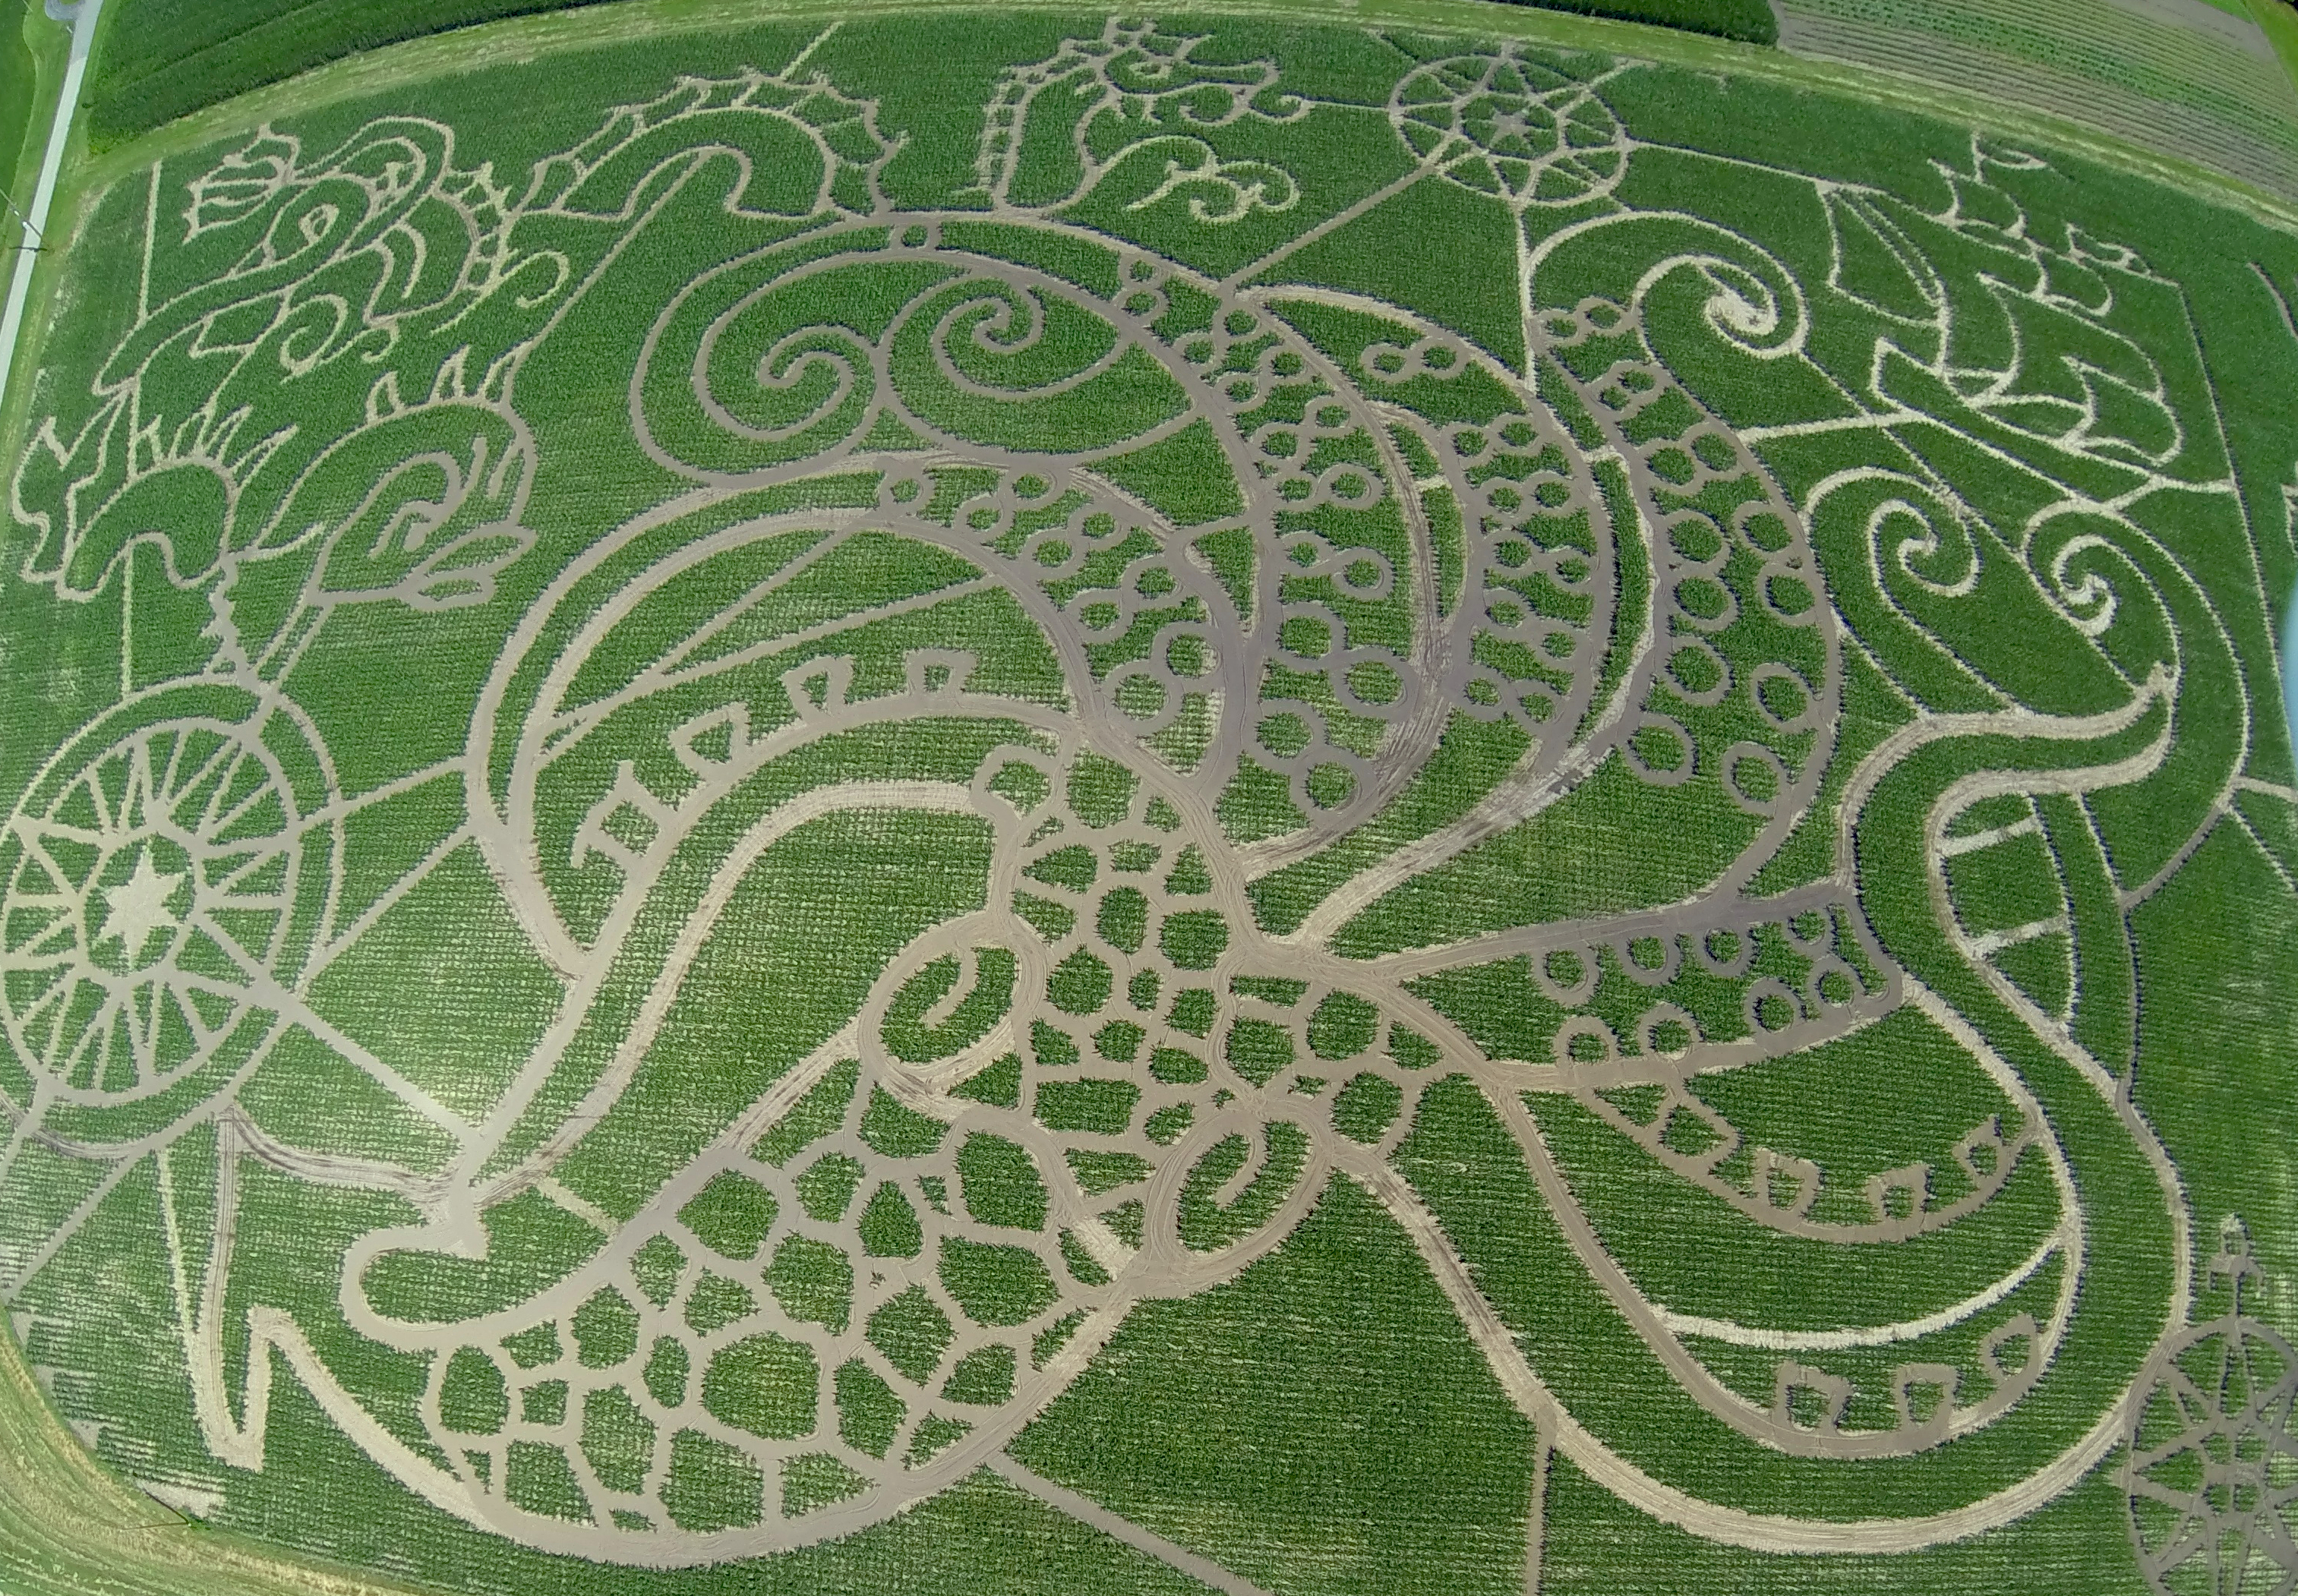 2013 Treinen Farm Sea Monster Corn Maze is complete